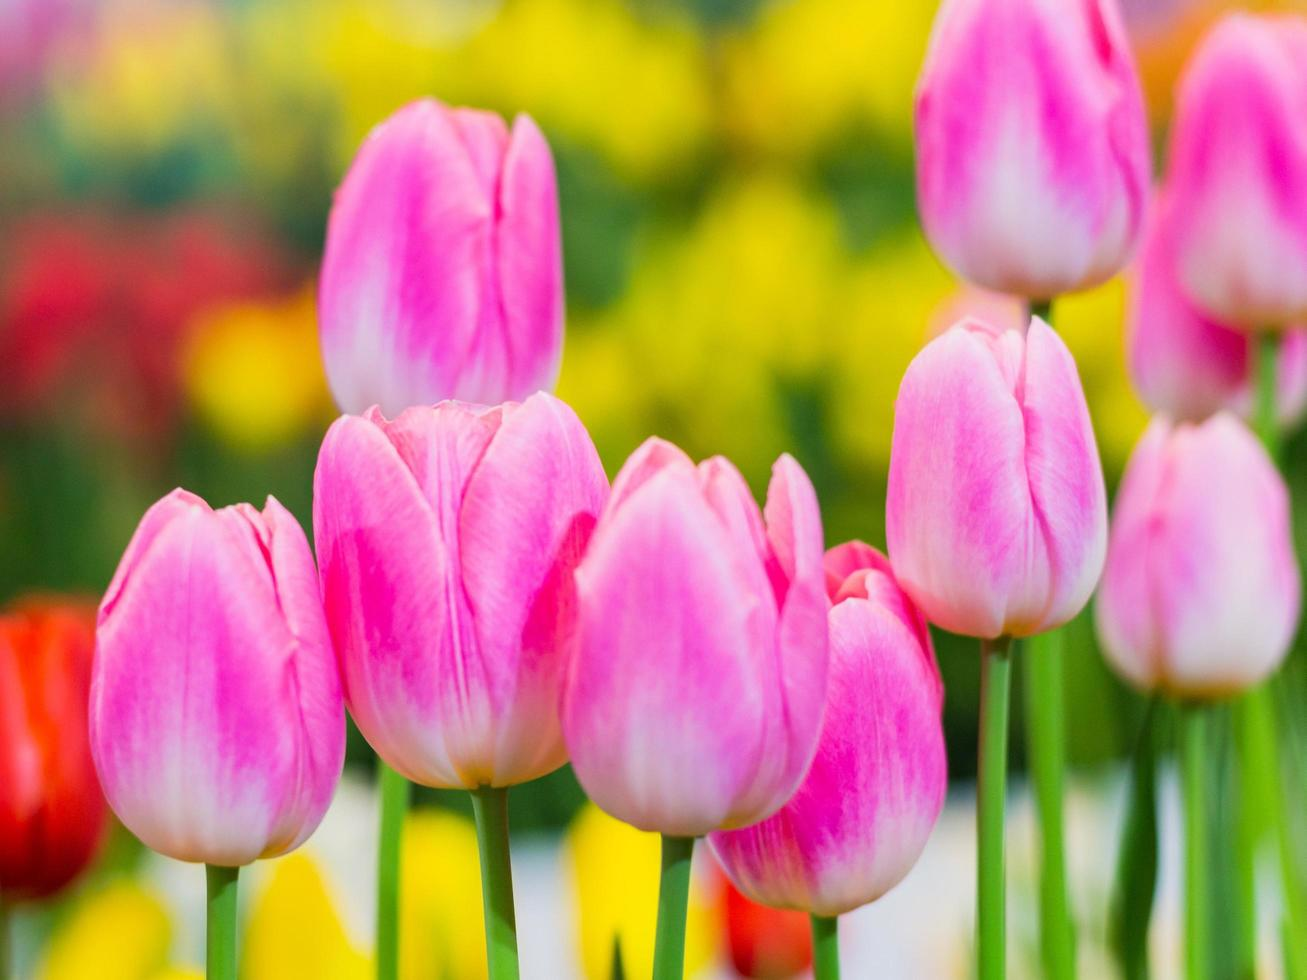 Pink tulips in bloom photo